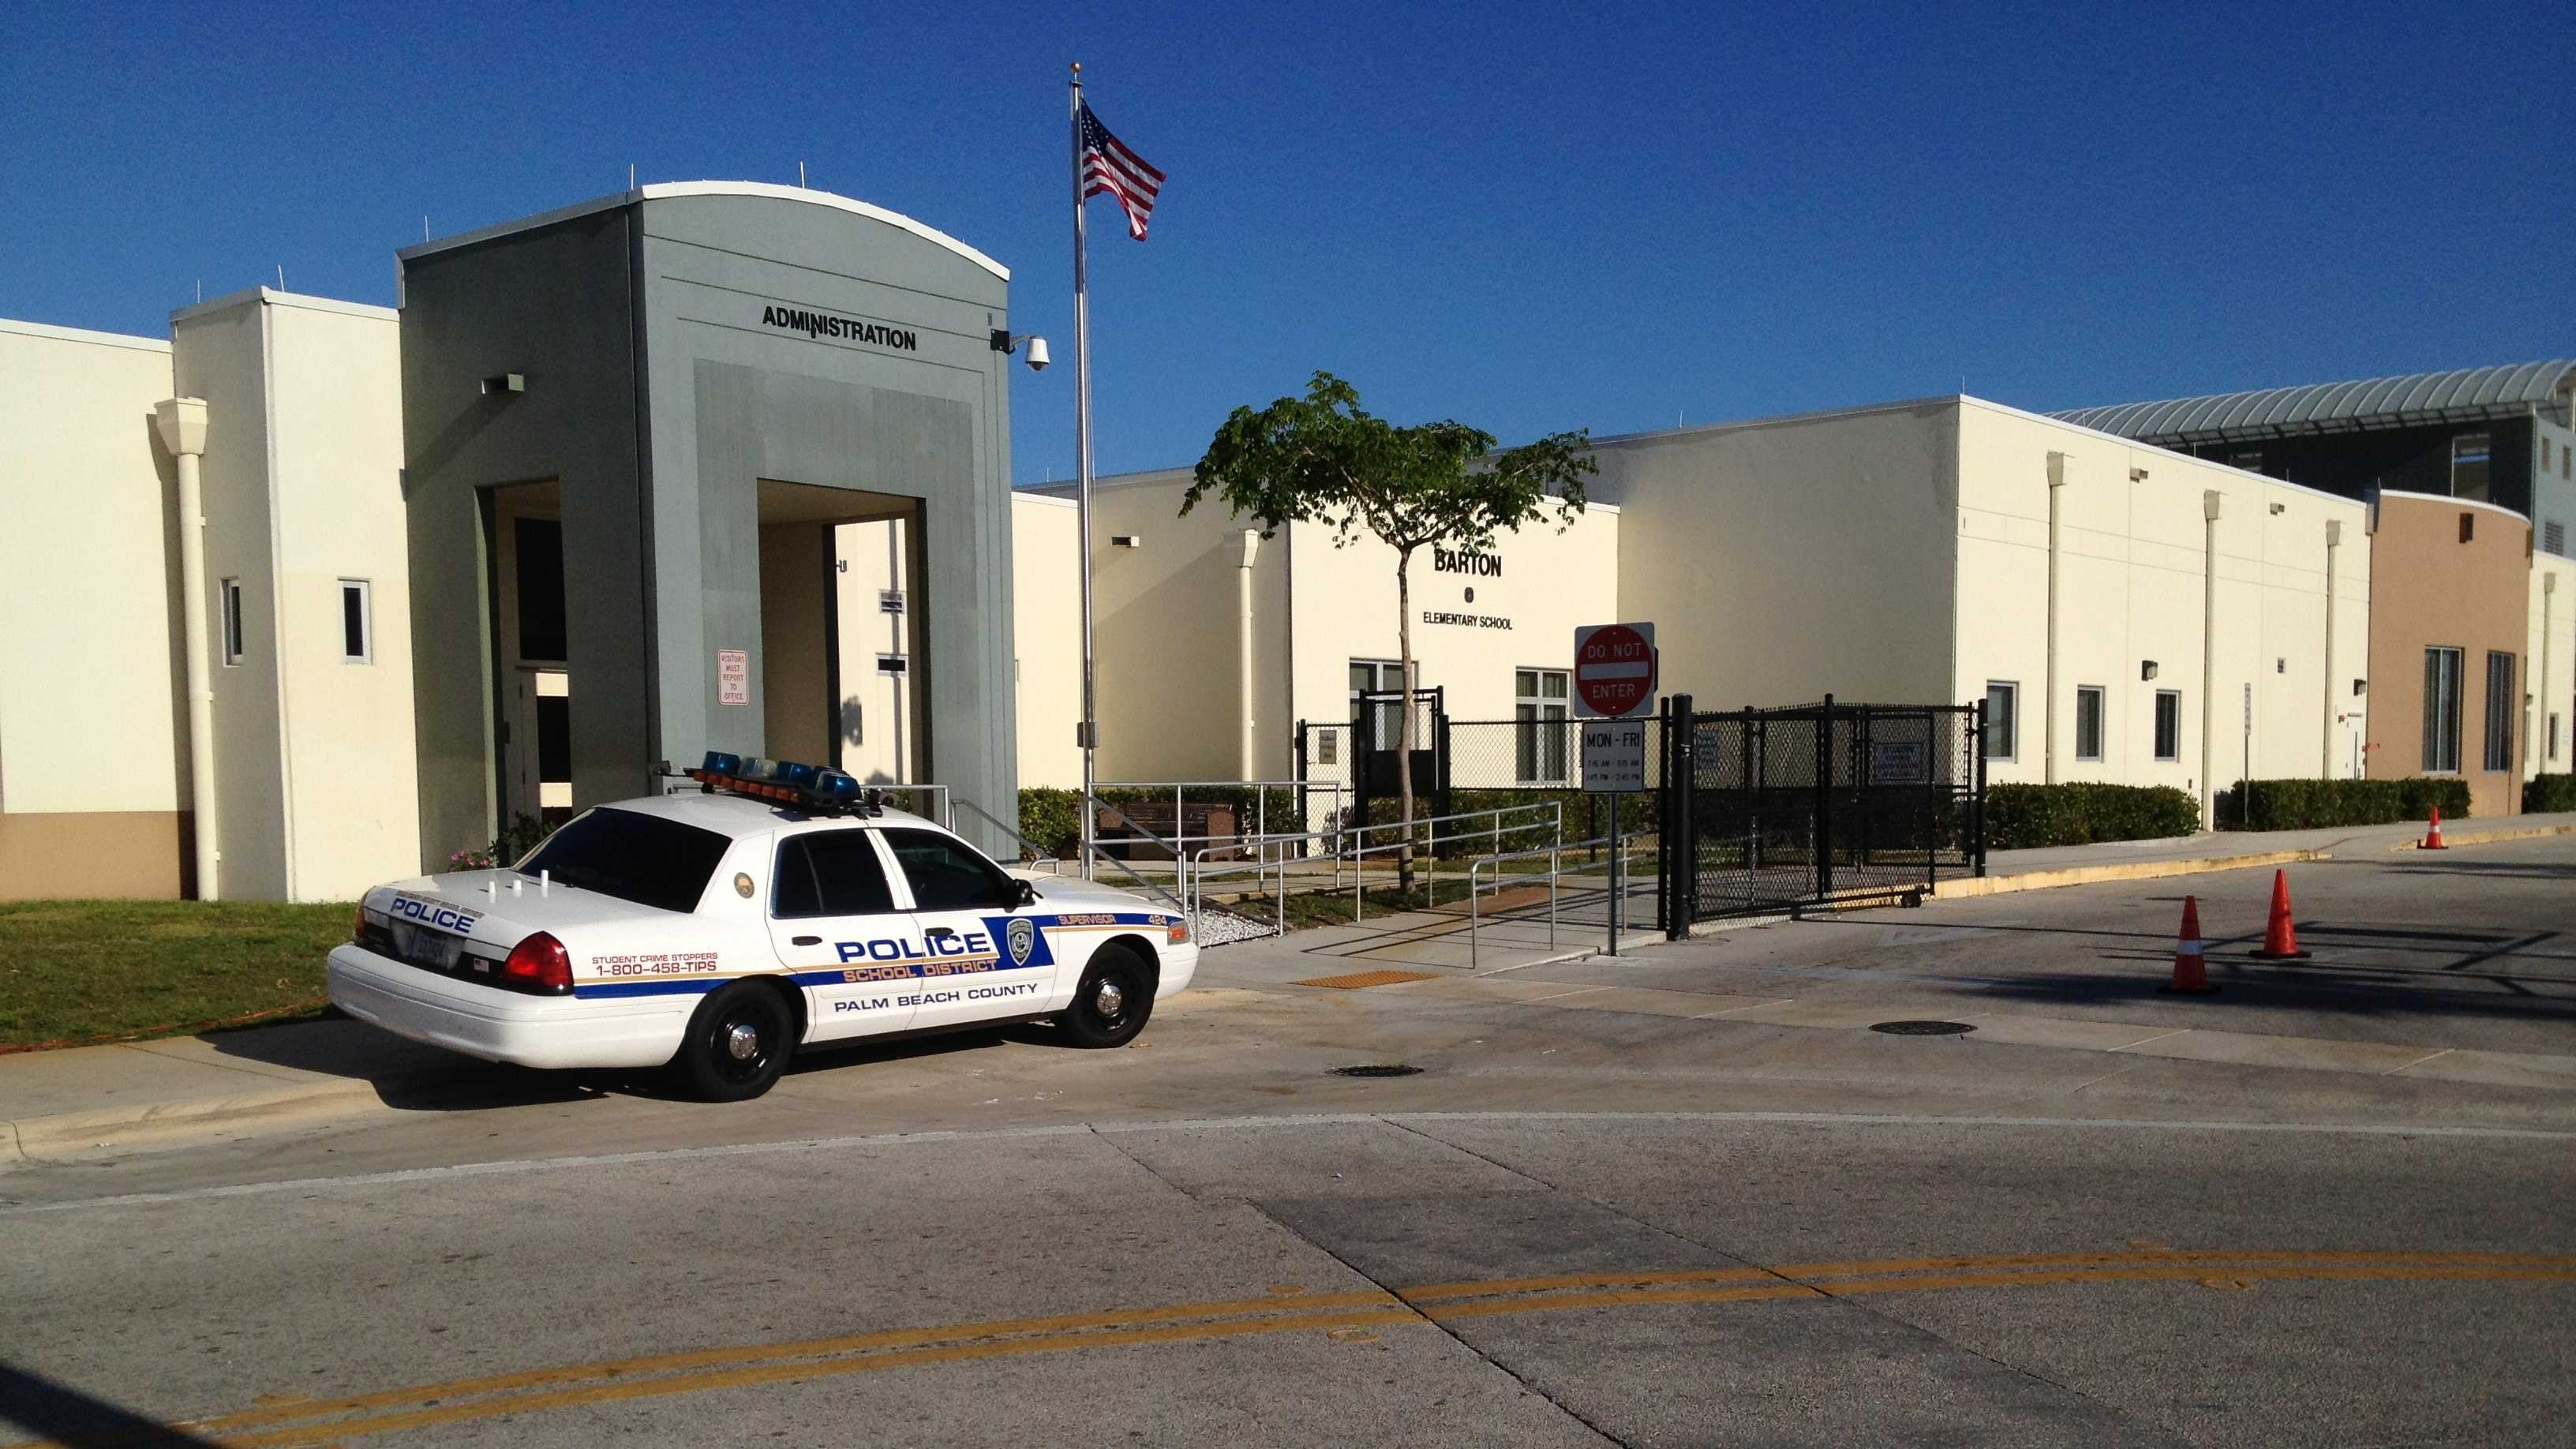 Police say two loaded guns were found in a student's backpack at Barton Elementary School.